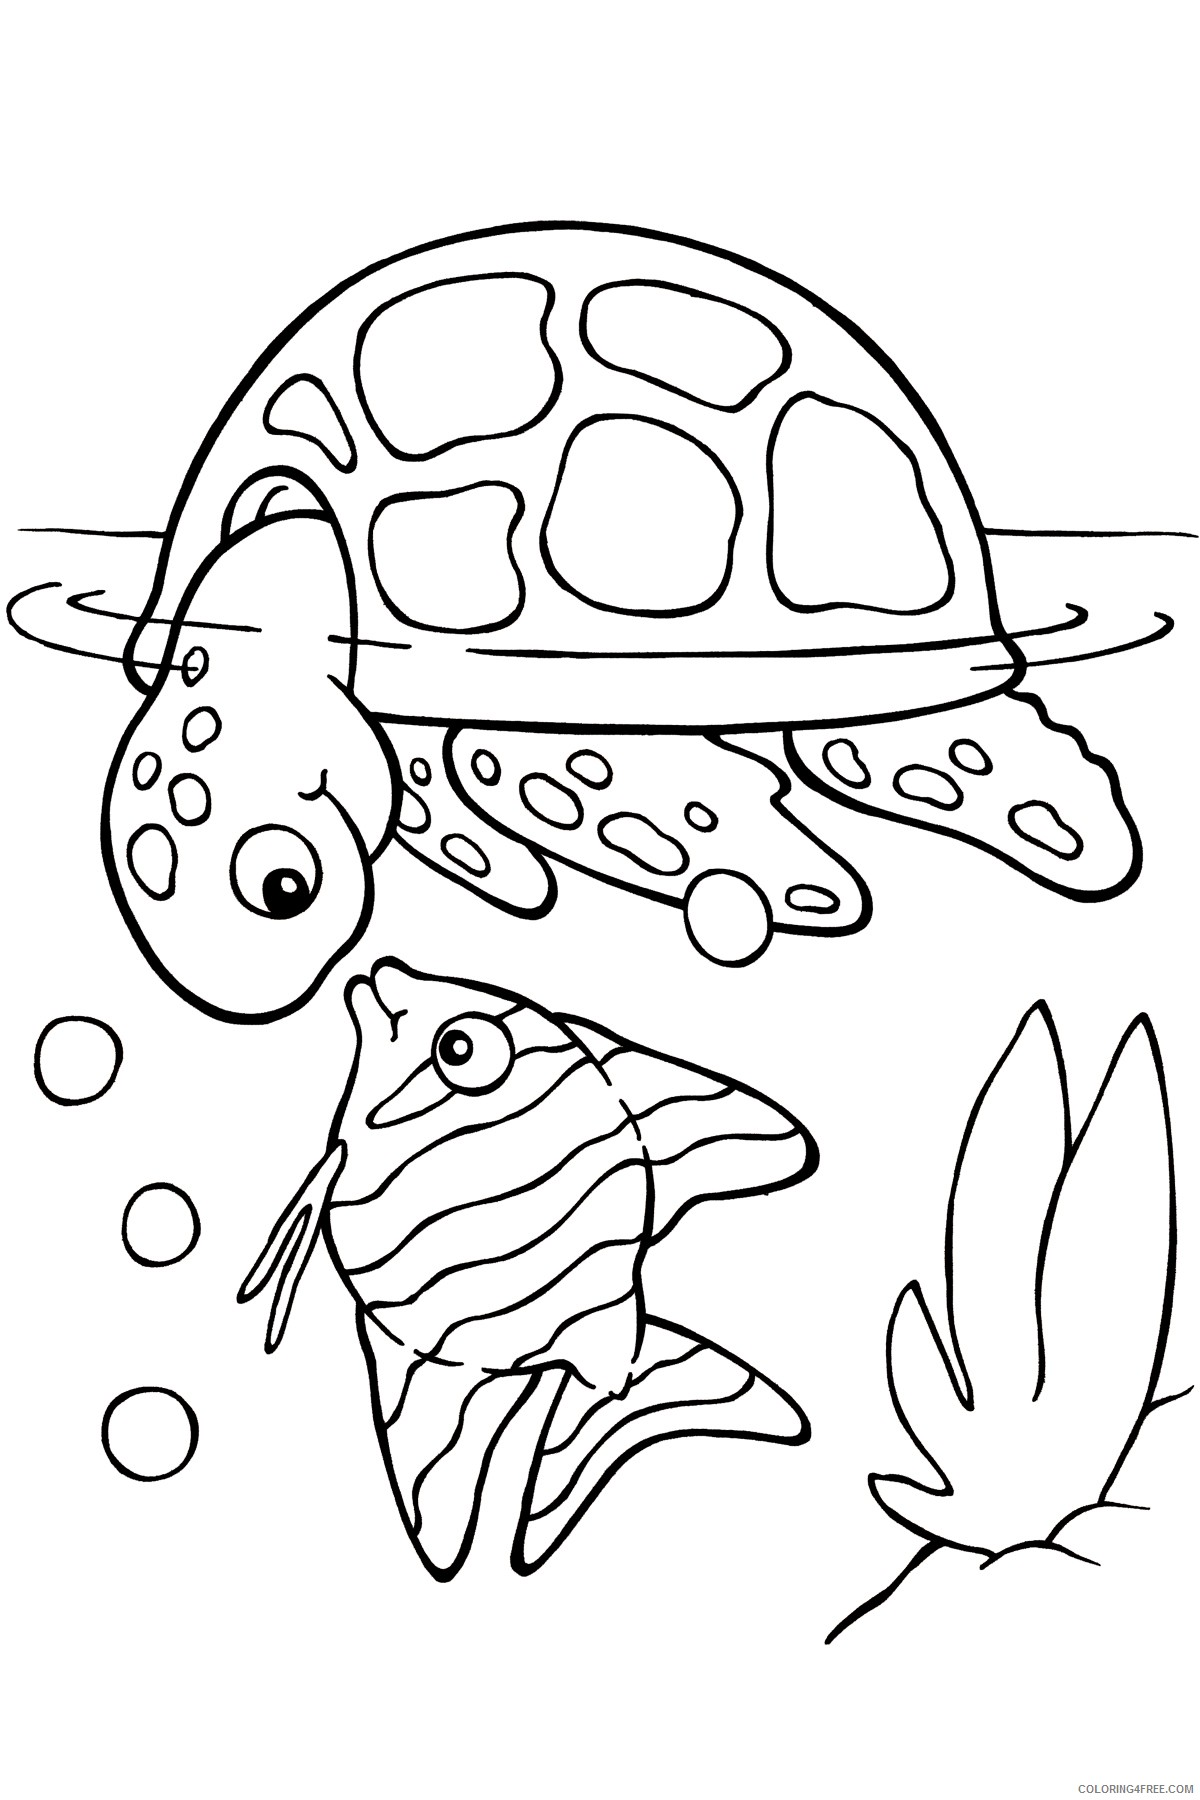 sea turtle coloring pages with fish 2 Coloring4free